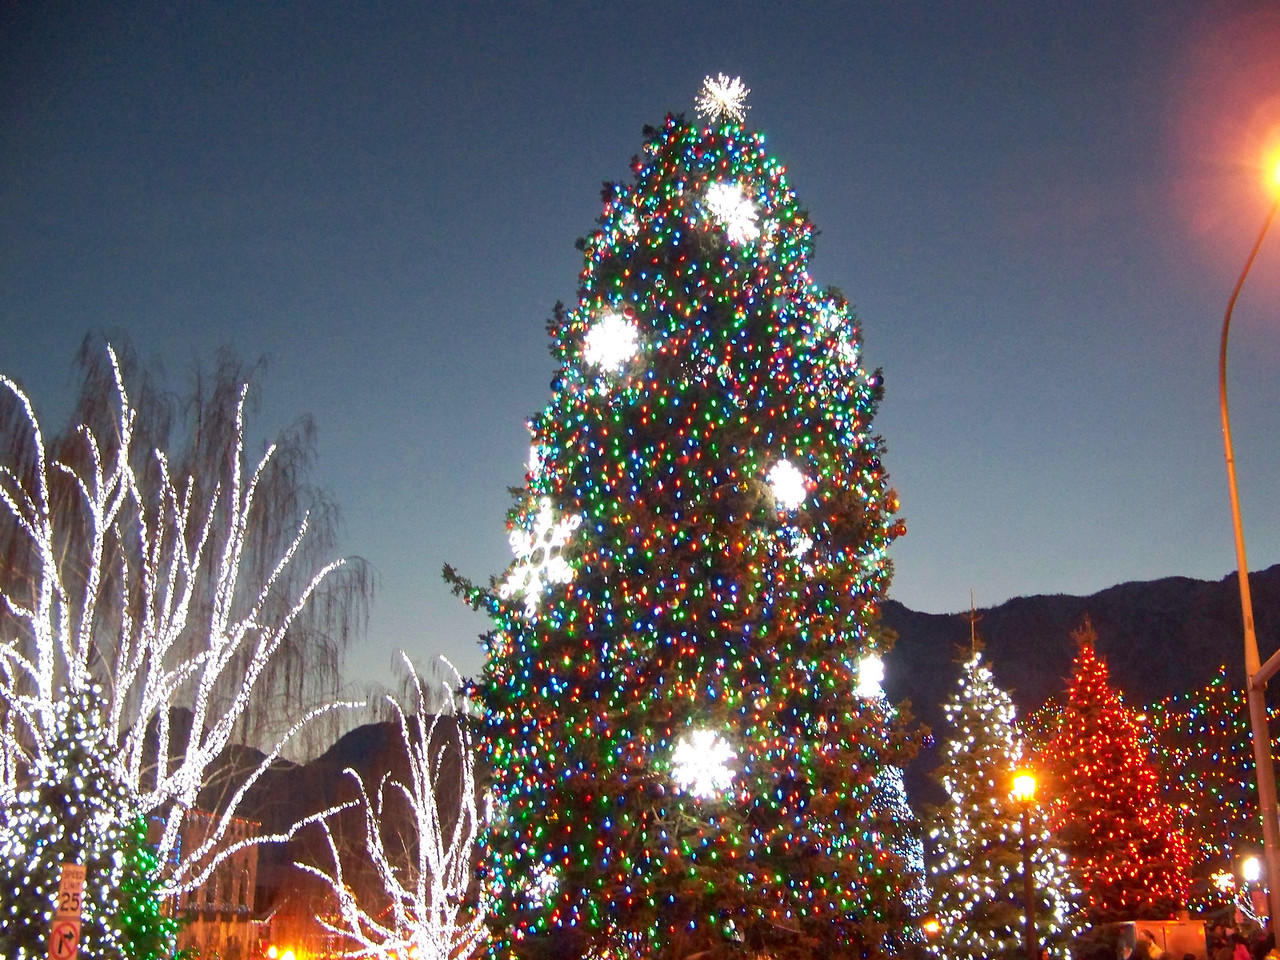 """I liked the big snowflakes that were among the Christmas lights on this tree. [Leavenworth, WA - December 2013 - <b><a target=""""_new"""" href=""""http://youtu.be/NqCqDCOY_tc"""">Watch my video here</a></b>]"""